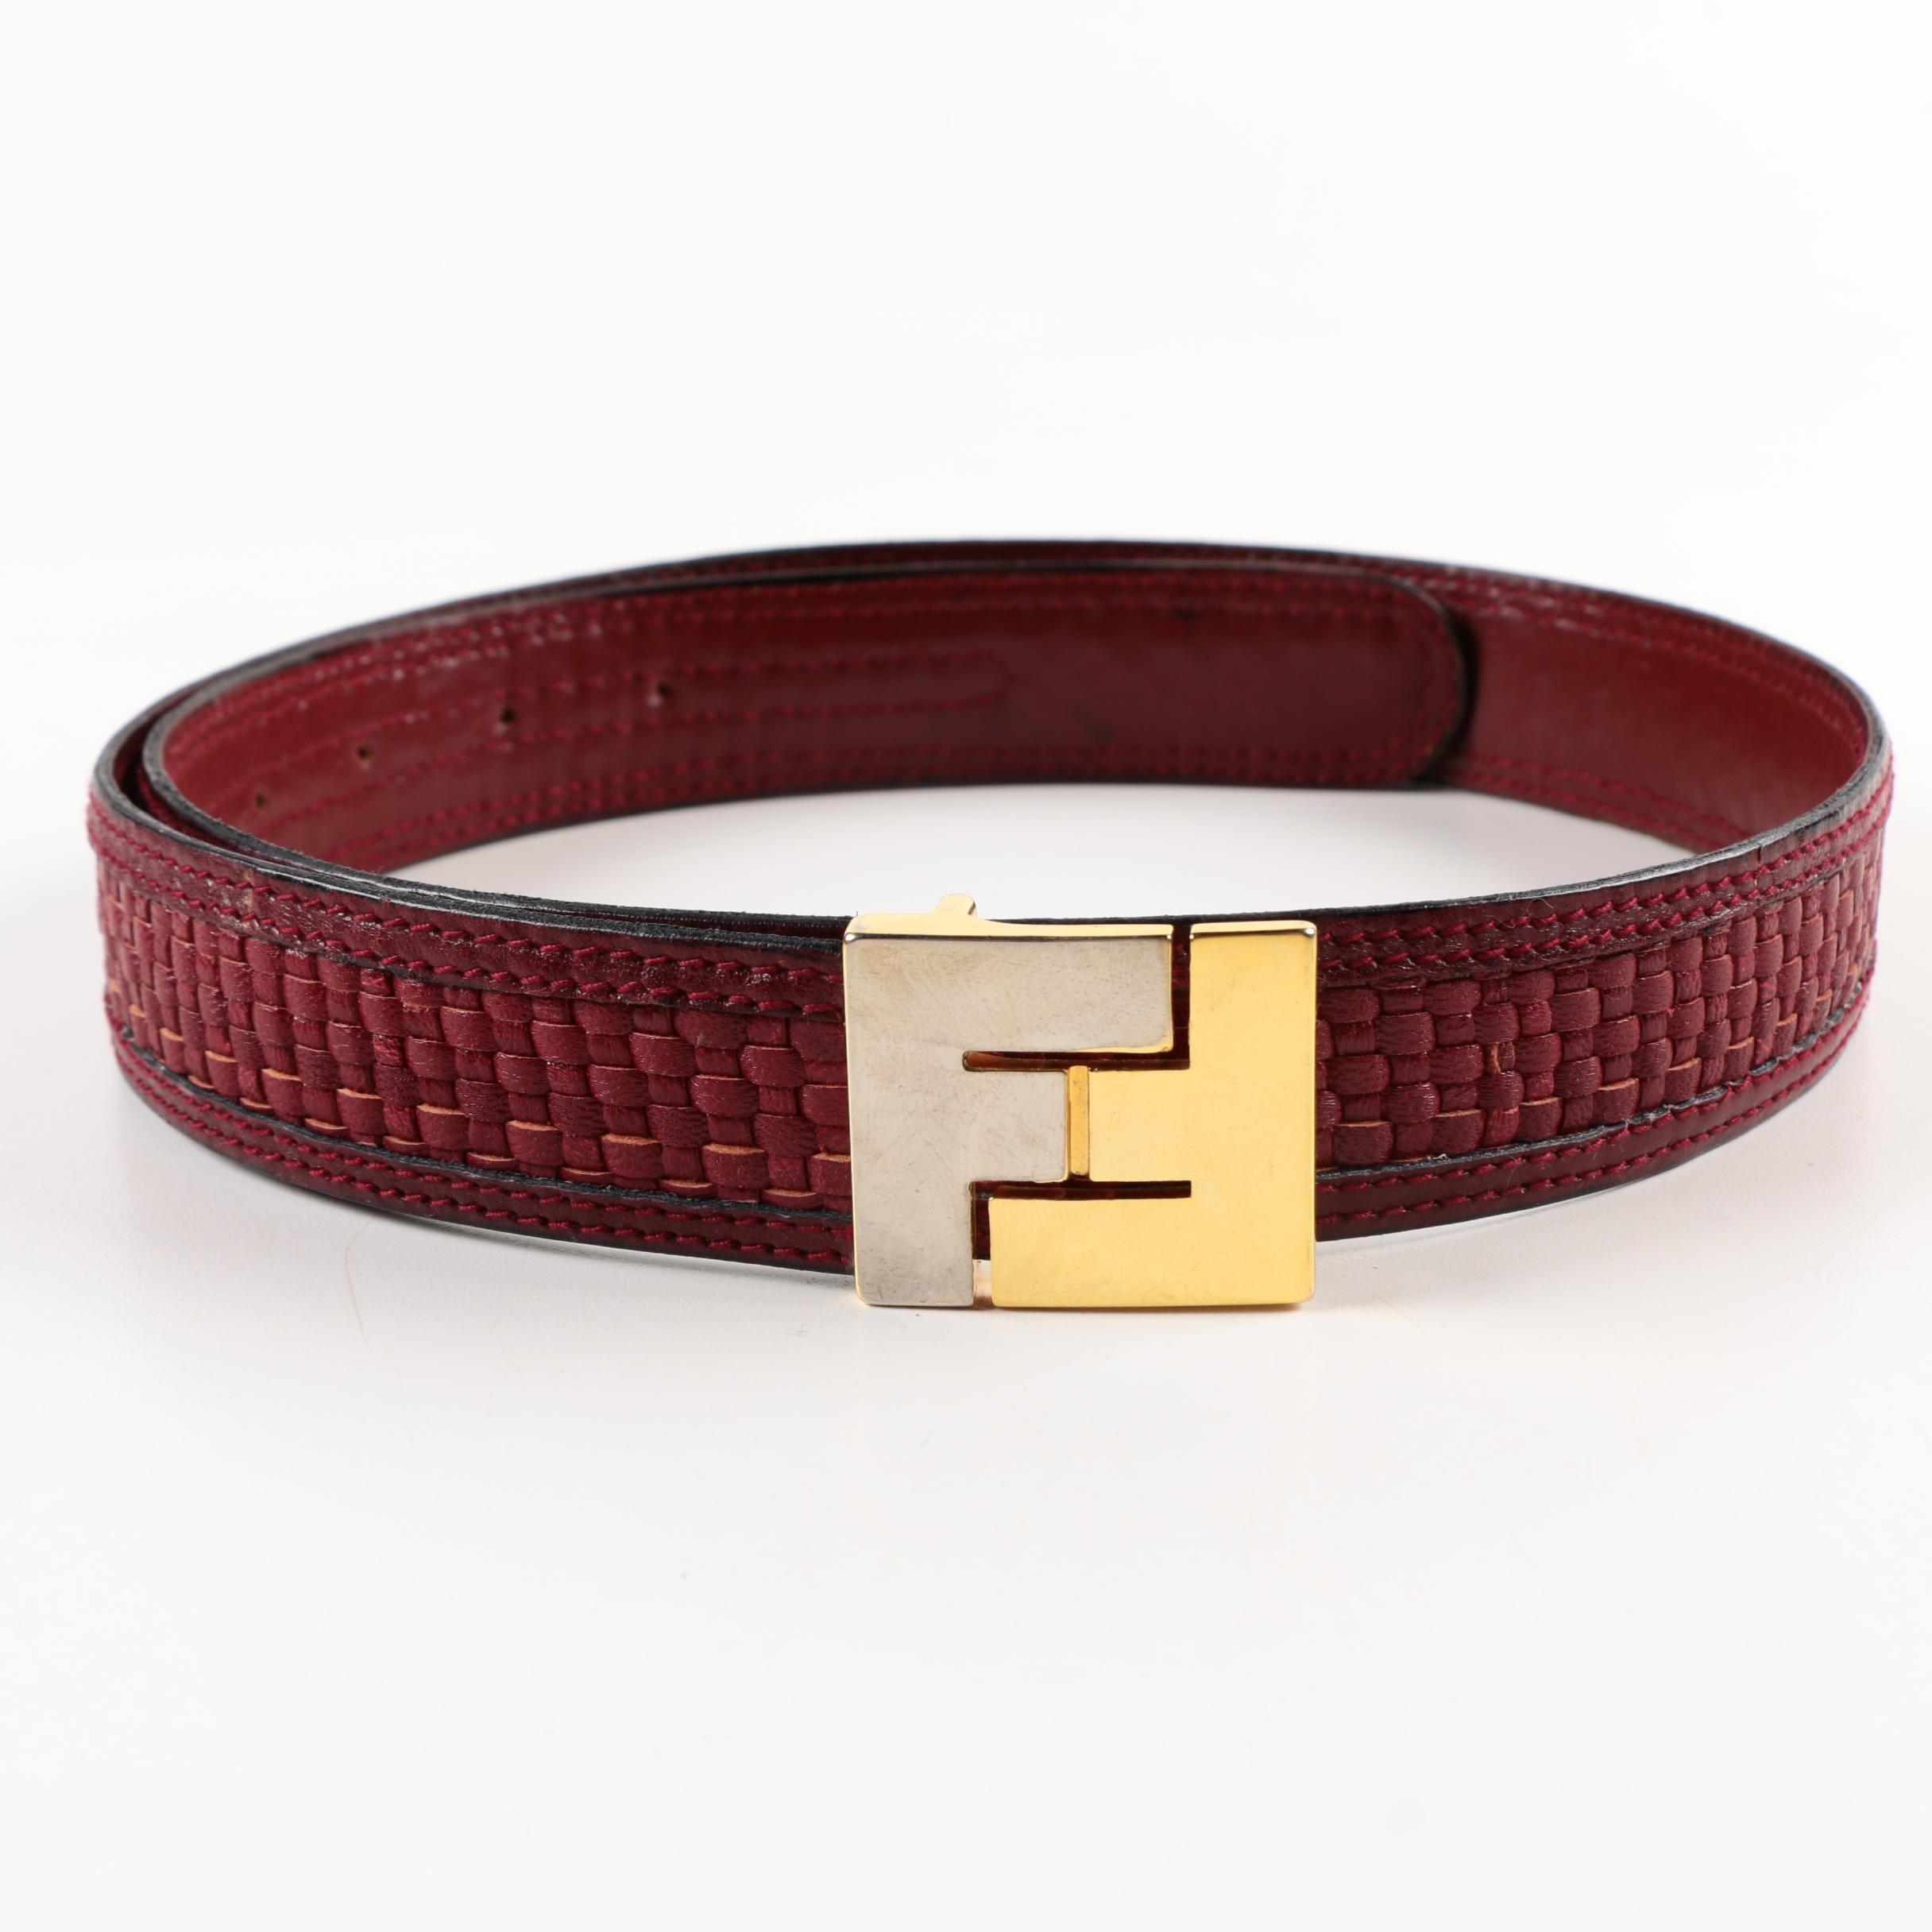 Vintage Fendi Woven Burgundy Leather Belt